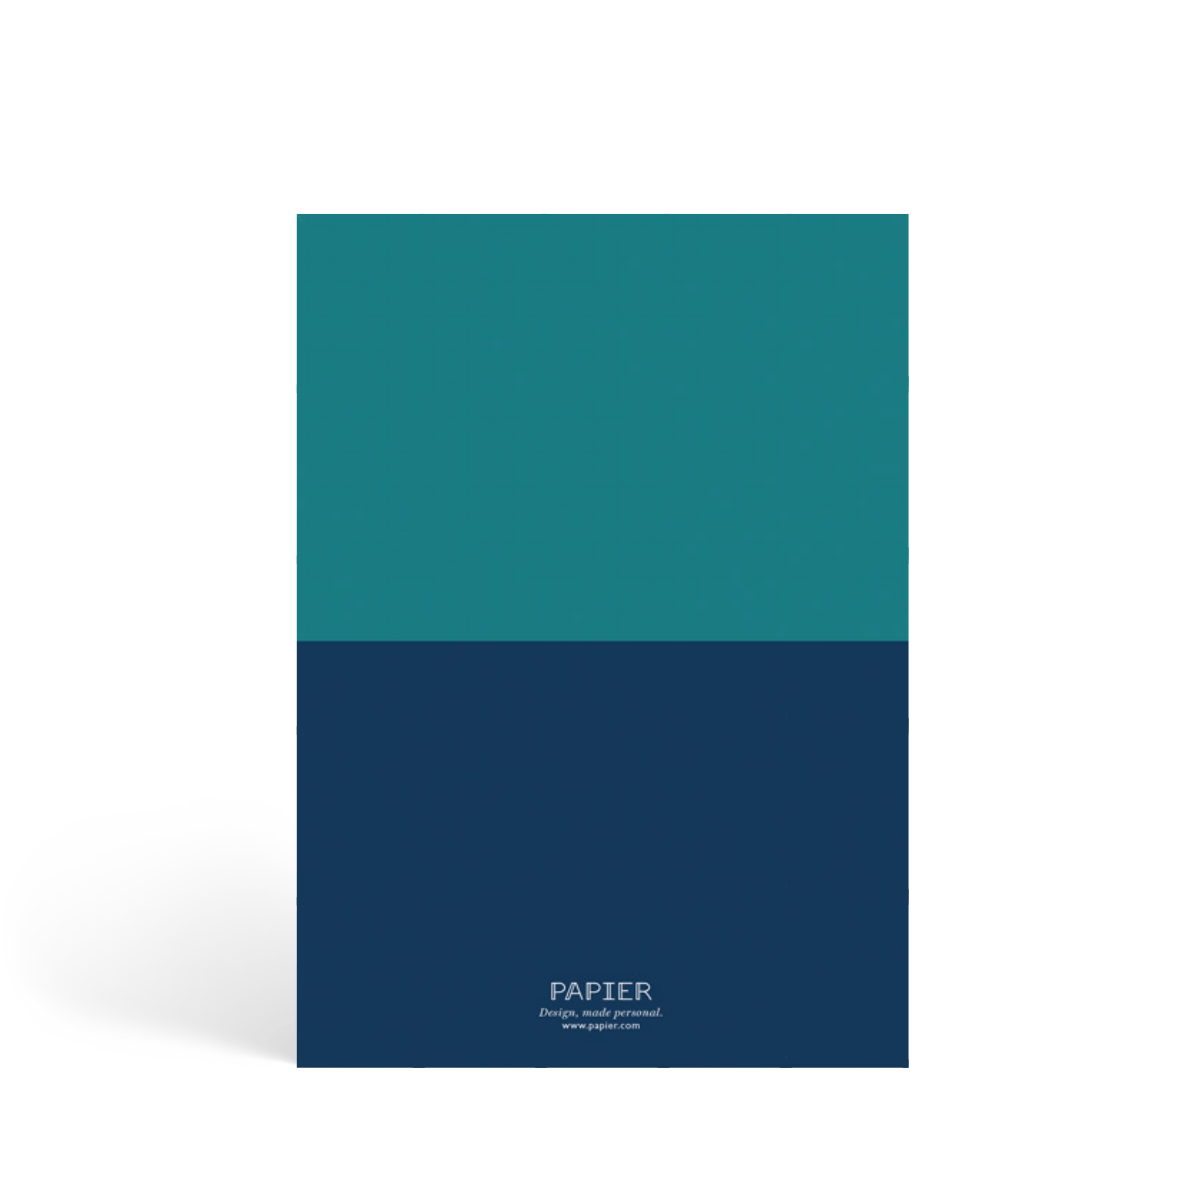 Https%3a%2f%2fwww.papier.com%2fproduct image%2f51670%2f5%2fcolourblock teal navy 12639 arriere 1540984638.png?ixlib=rb 1.1